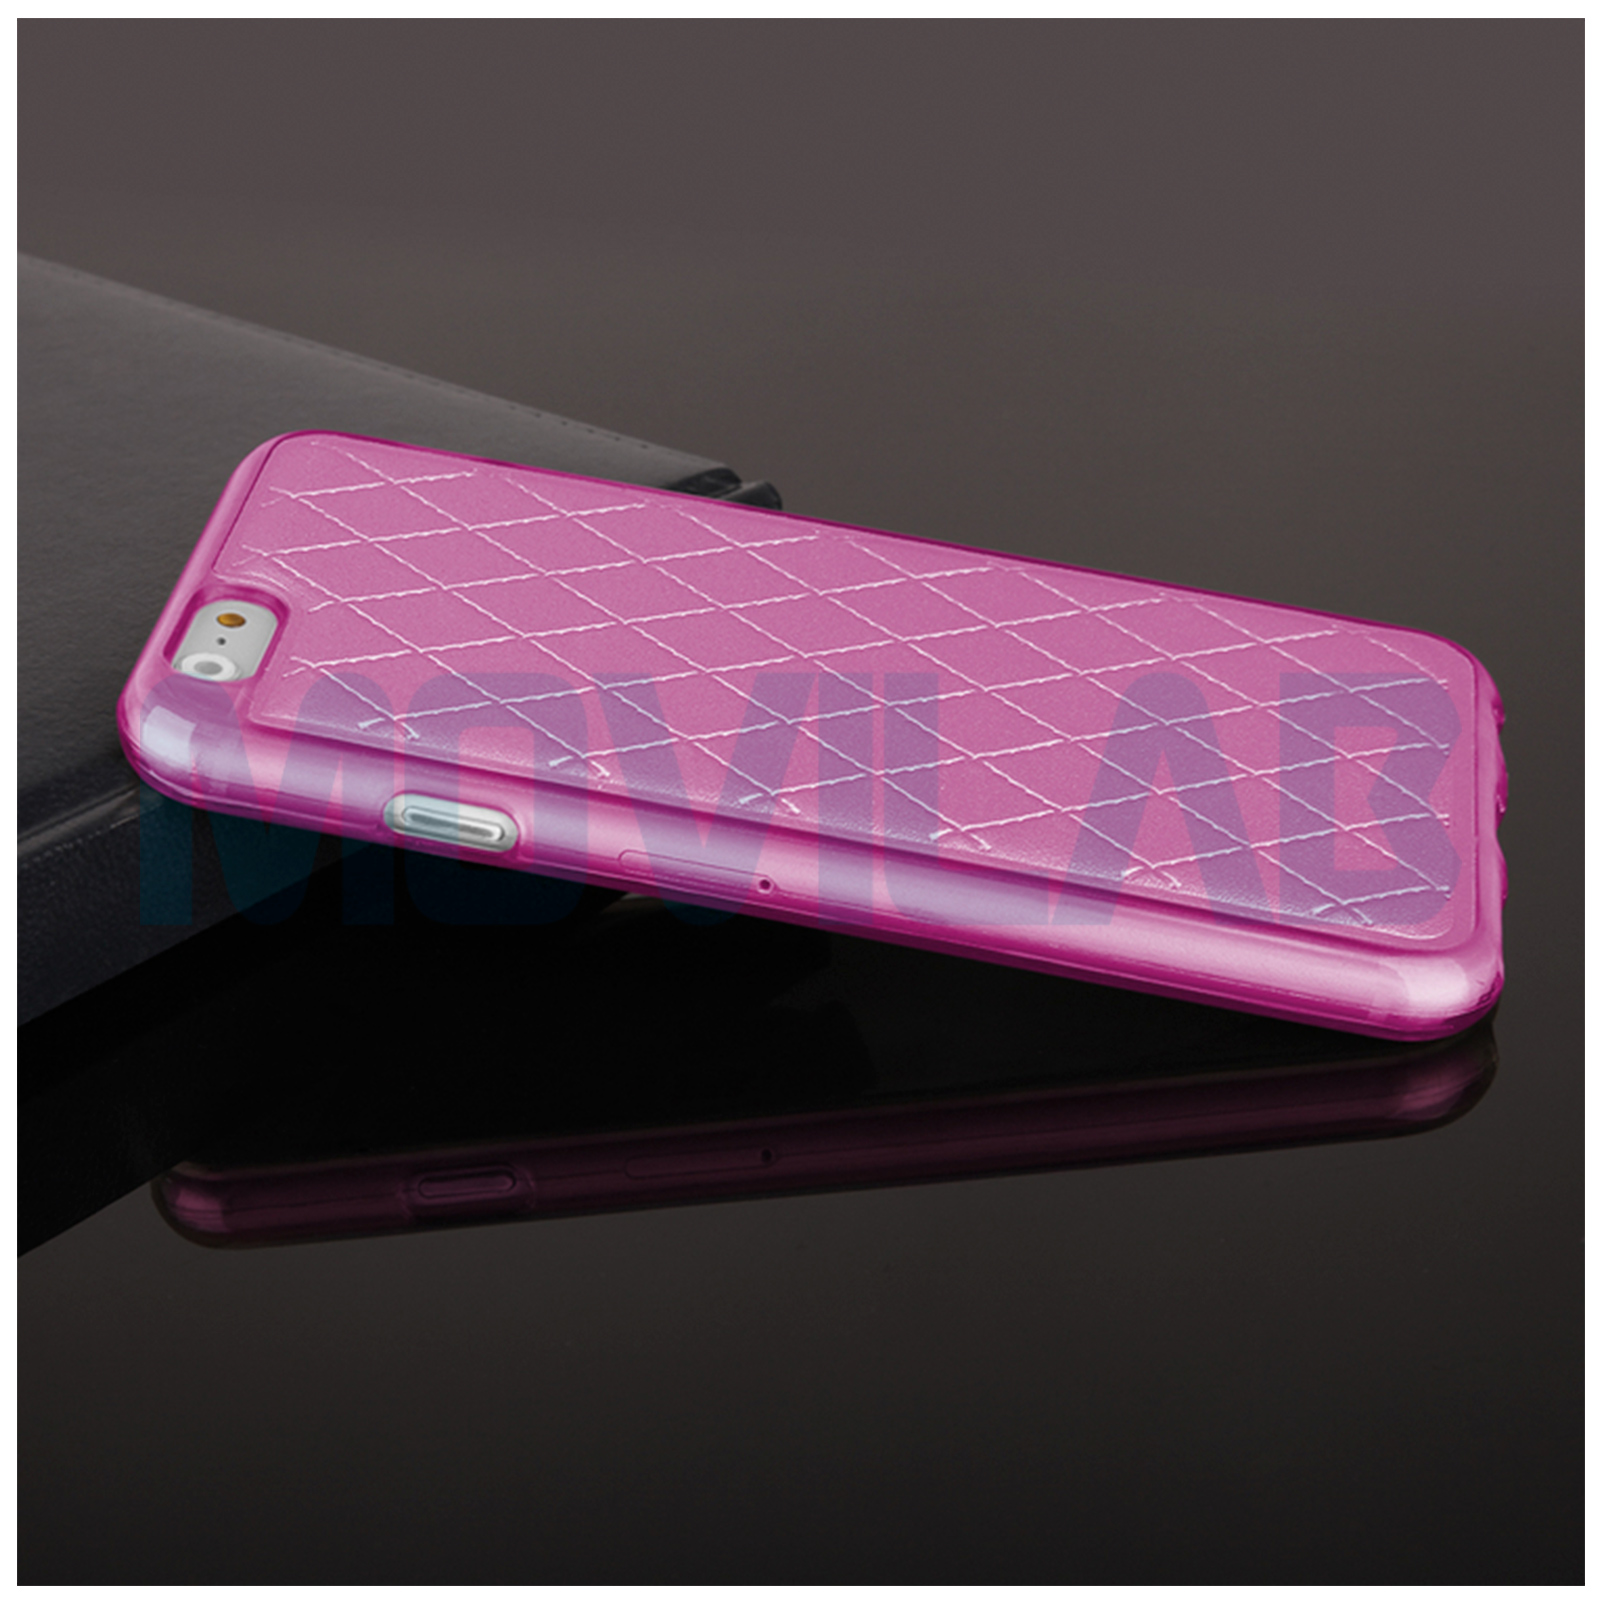 Funda carcasa Iphone 6 Plus conectores